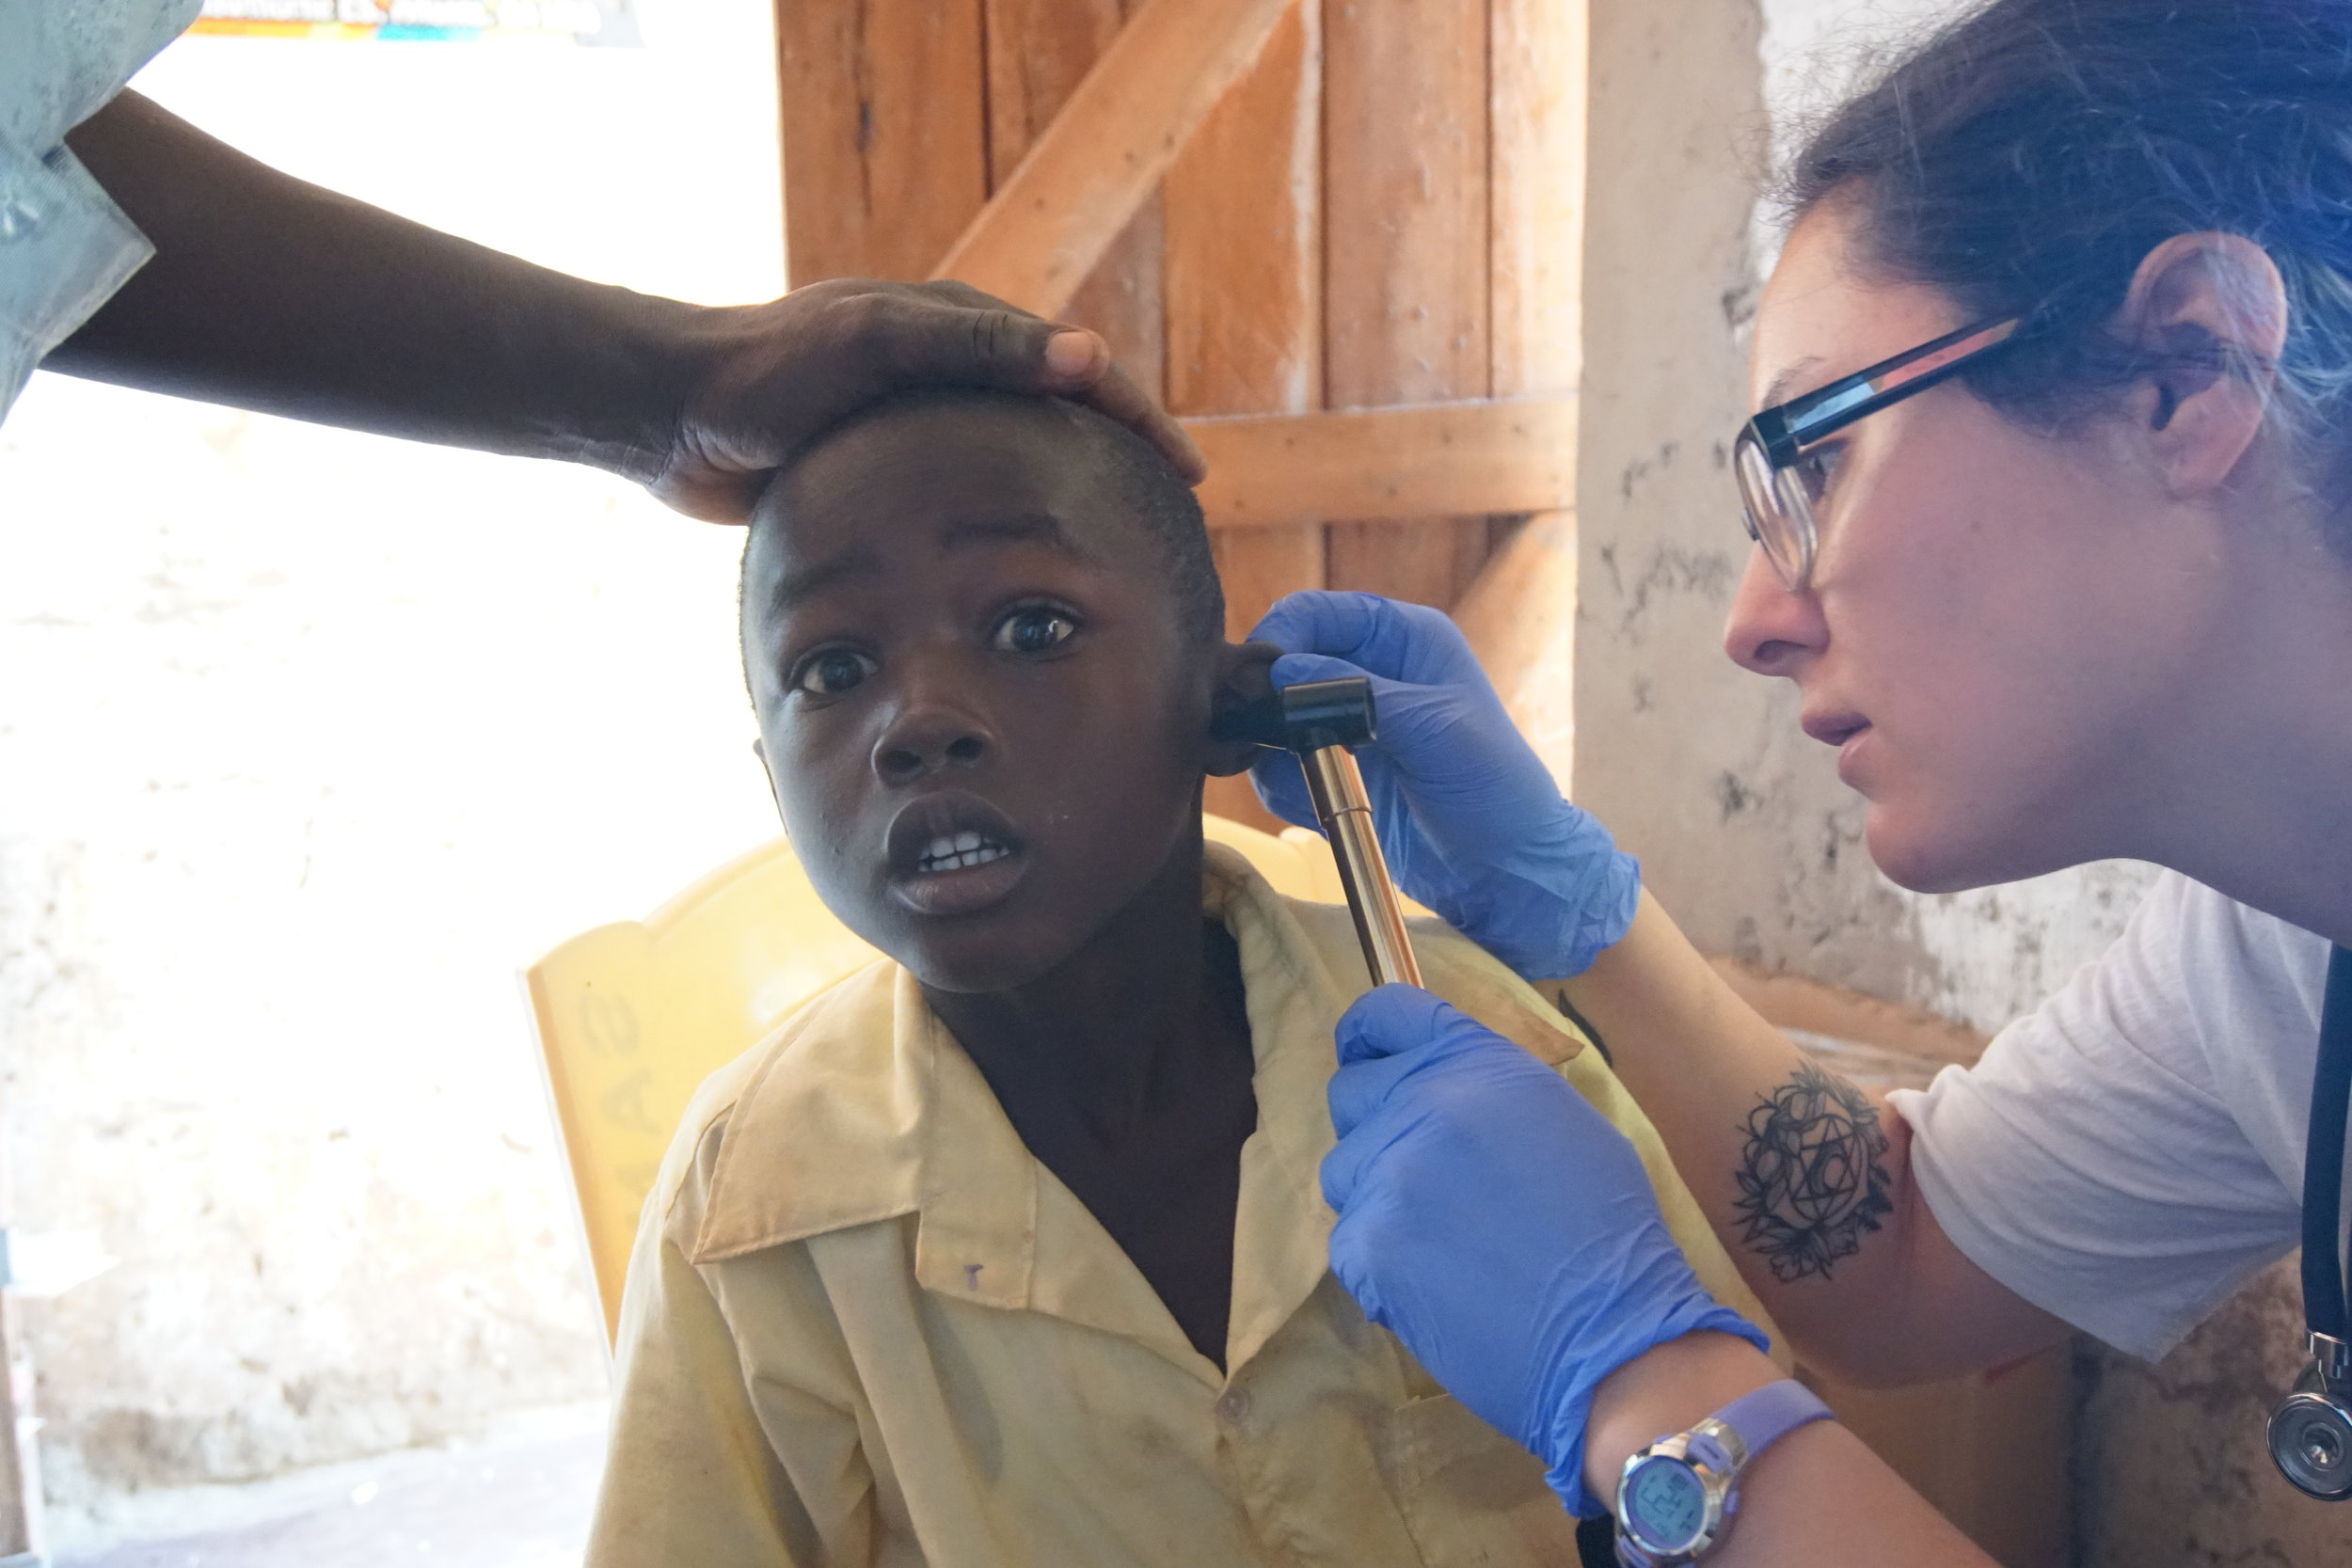 Brooke checks the ears of one of HIP's students. The otoscope was cold and the student wasn't sure what to make of it being in his ear.